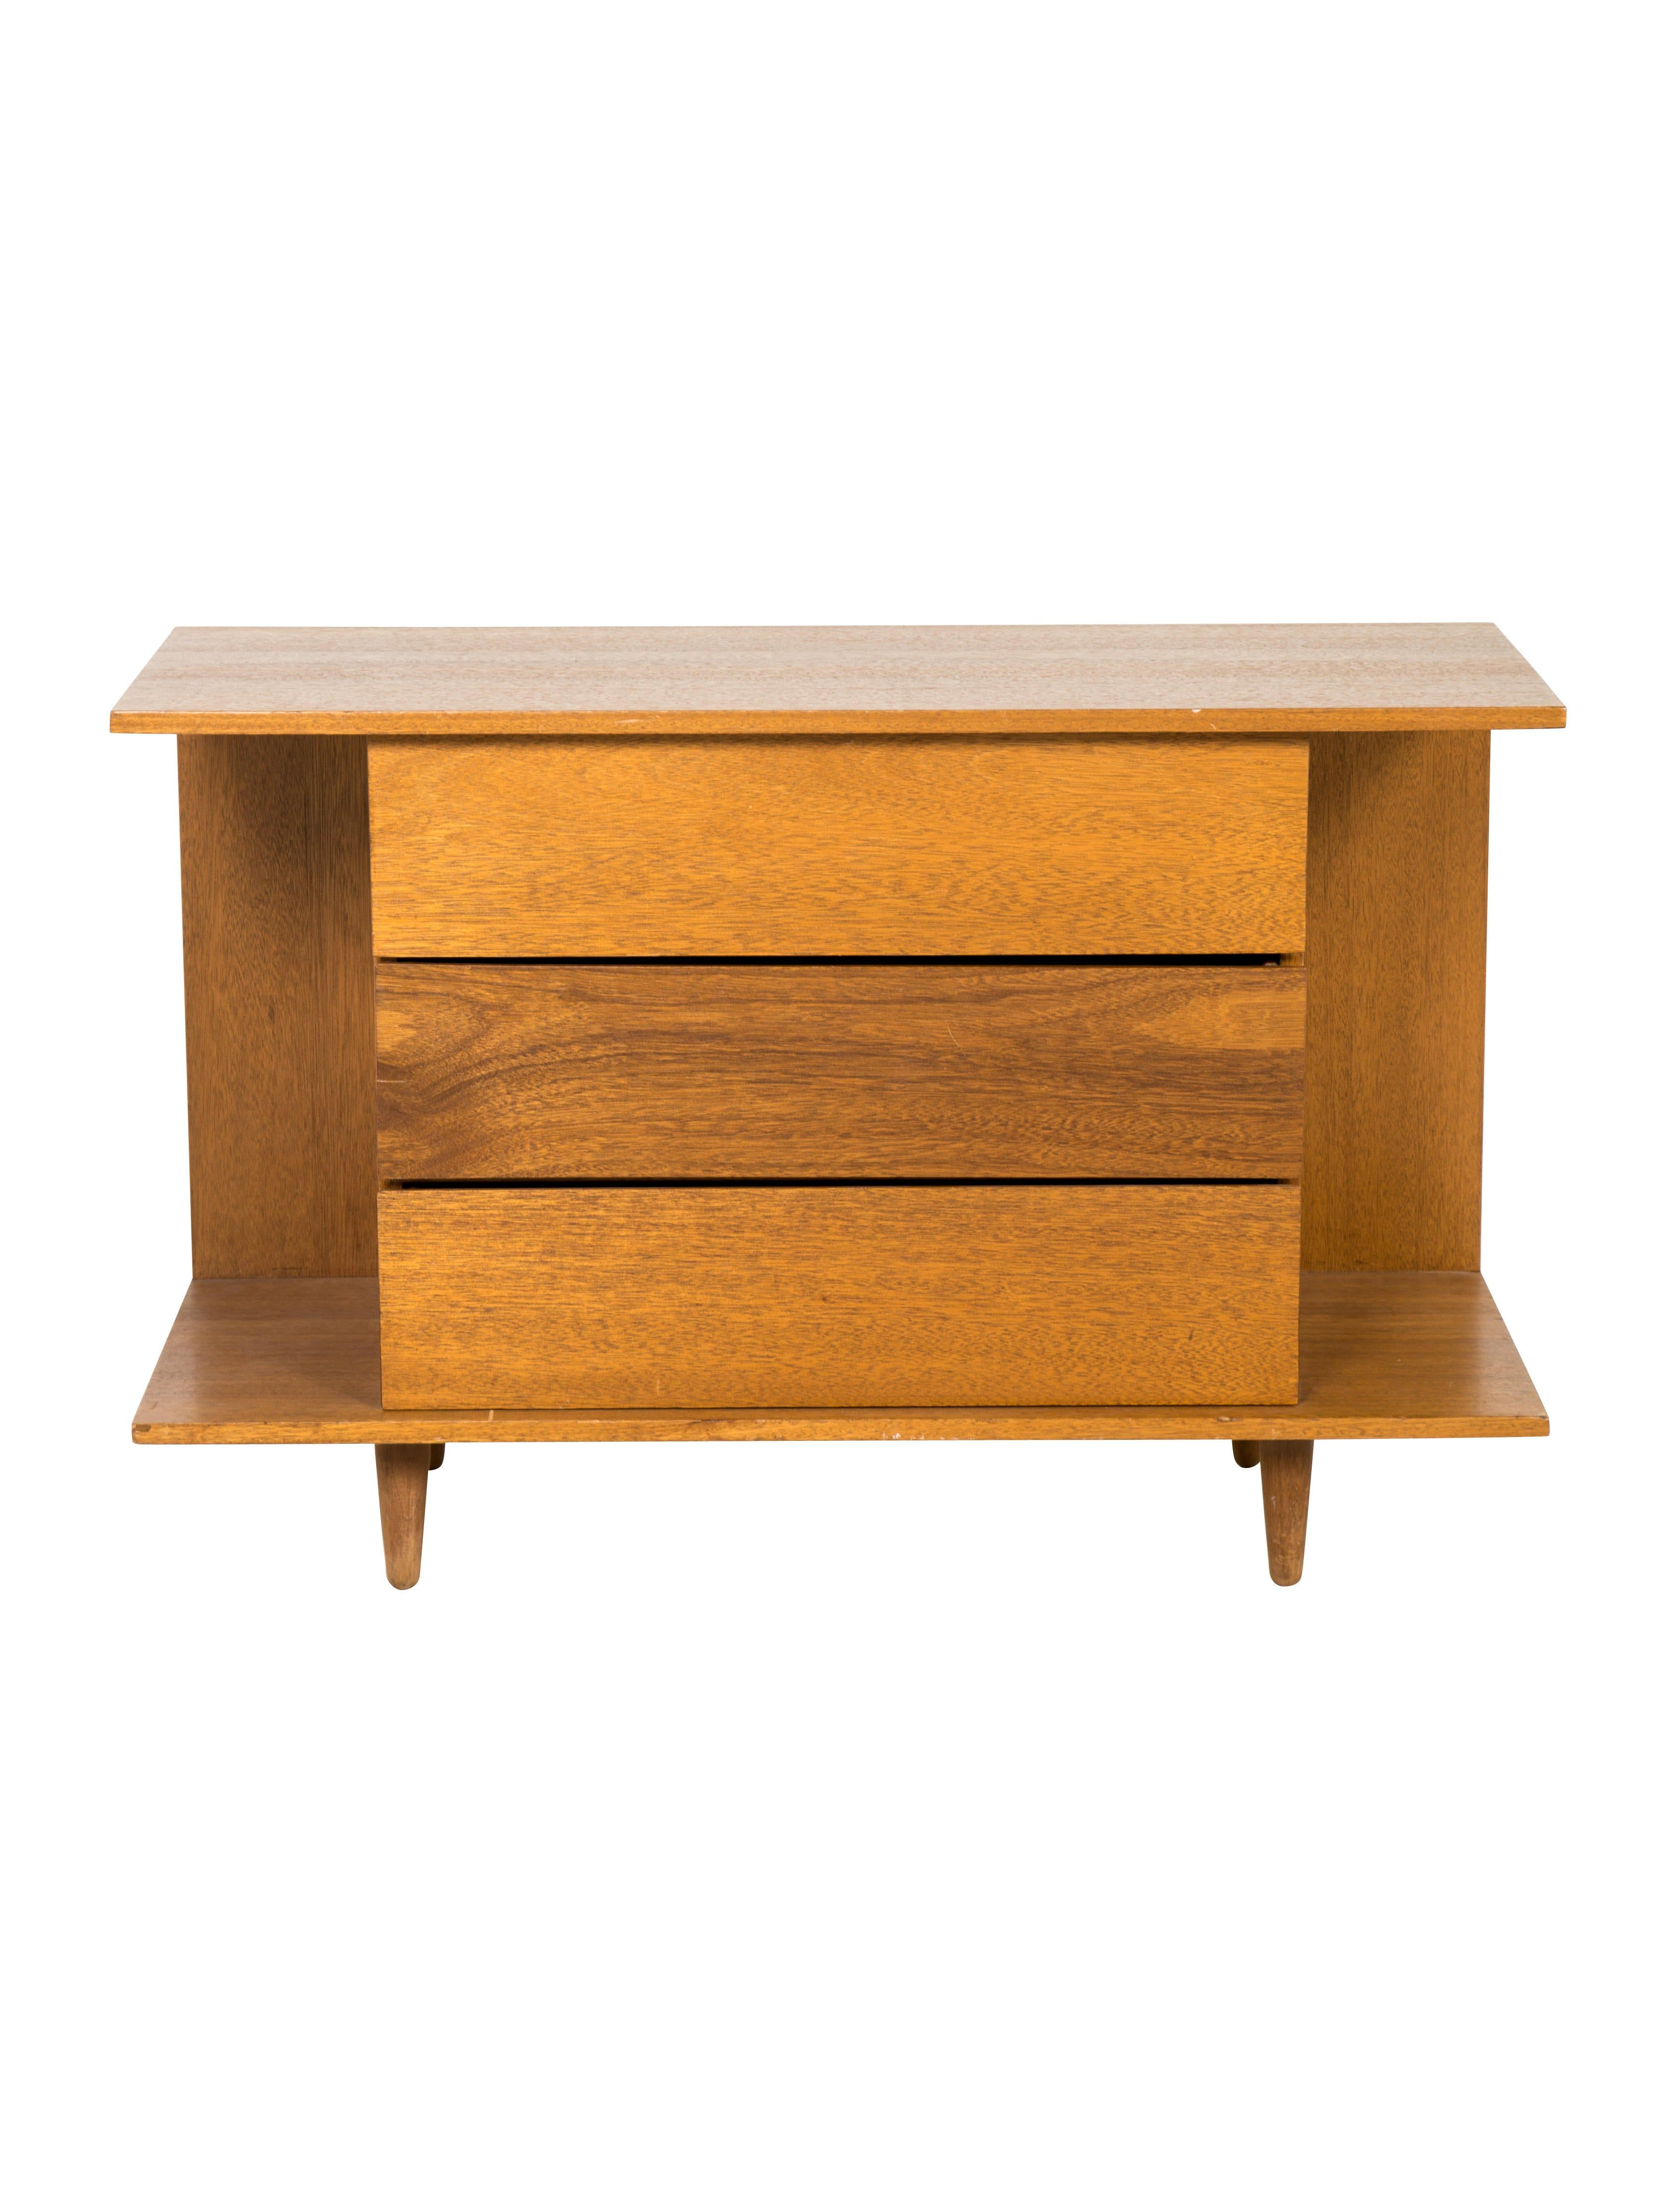 Mahogany Mid Century Modern Style Manuel Martin Dresser With Three Drawers Tapered Feet And Brand Stamp At Verso Dresser Furniture Oversized Art Luxury Items